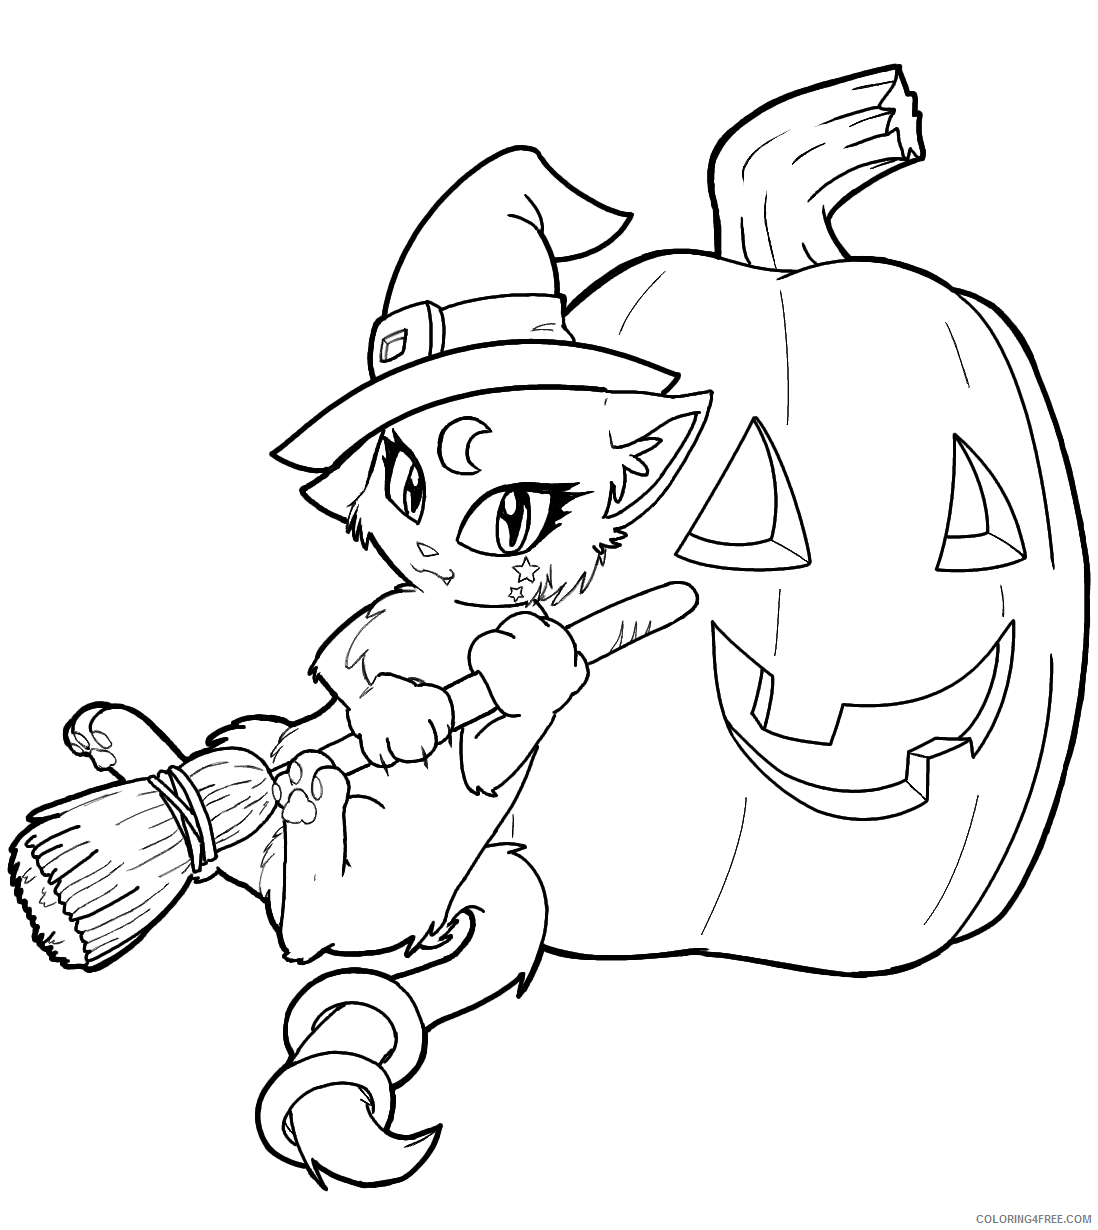 Scary Witch Coloring Pages Coloring4free Coloring4free Com